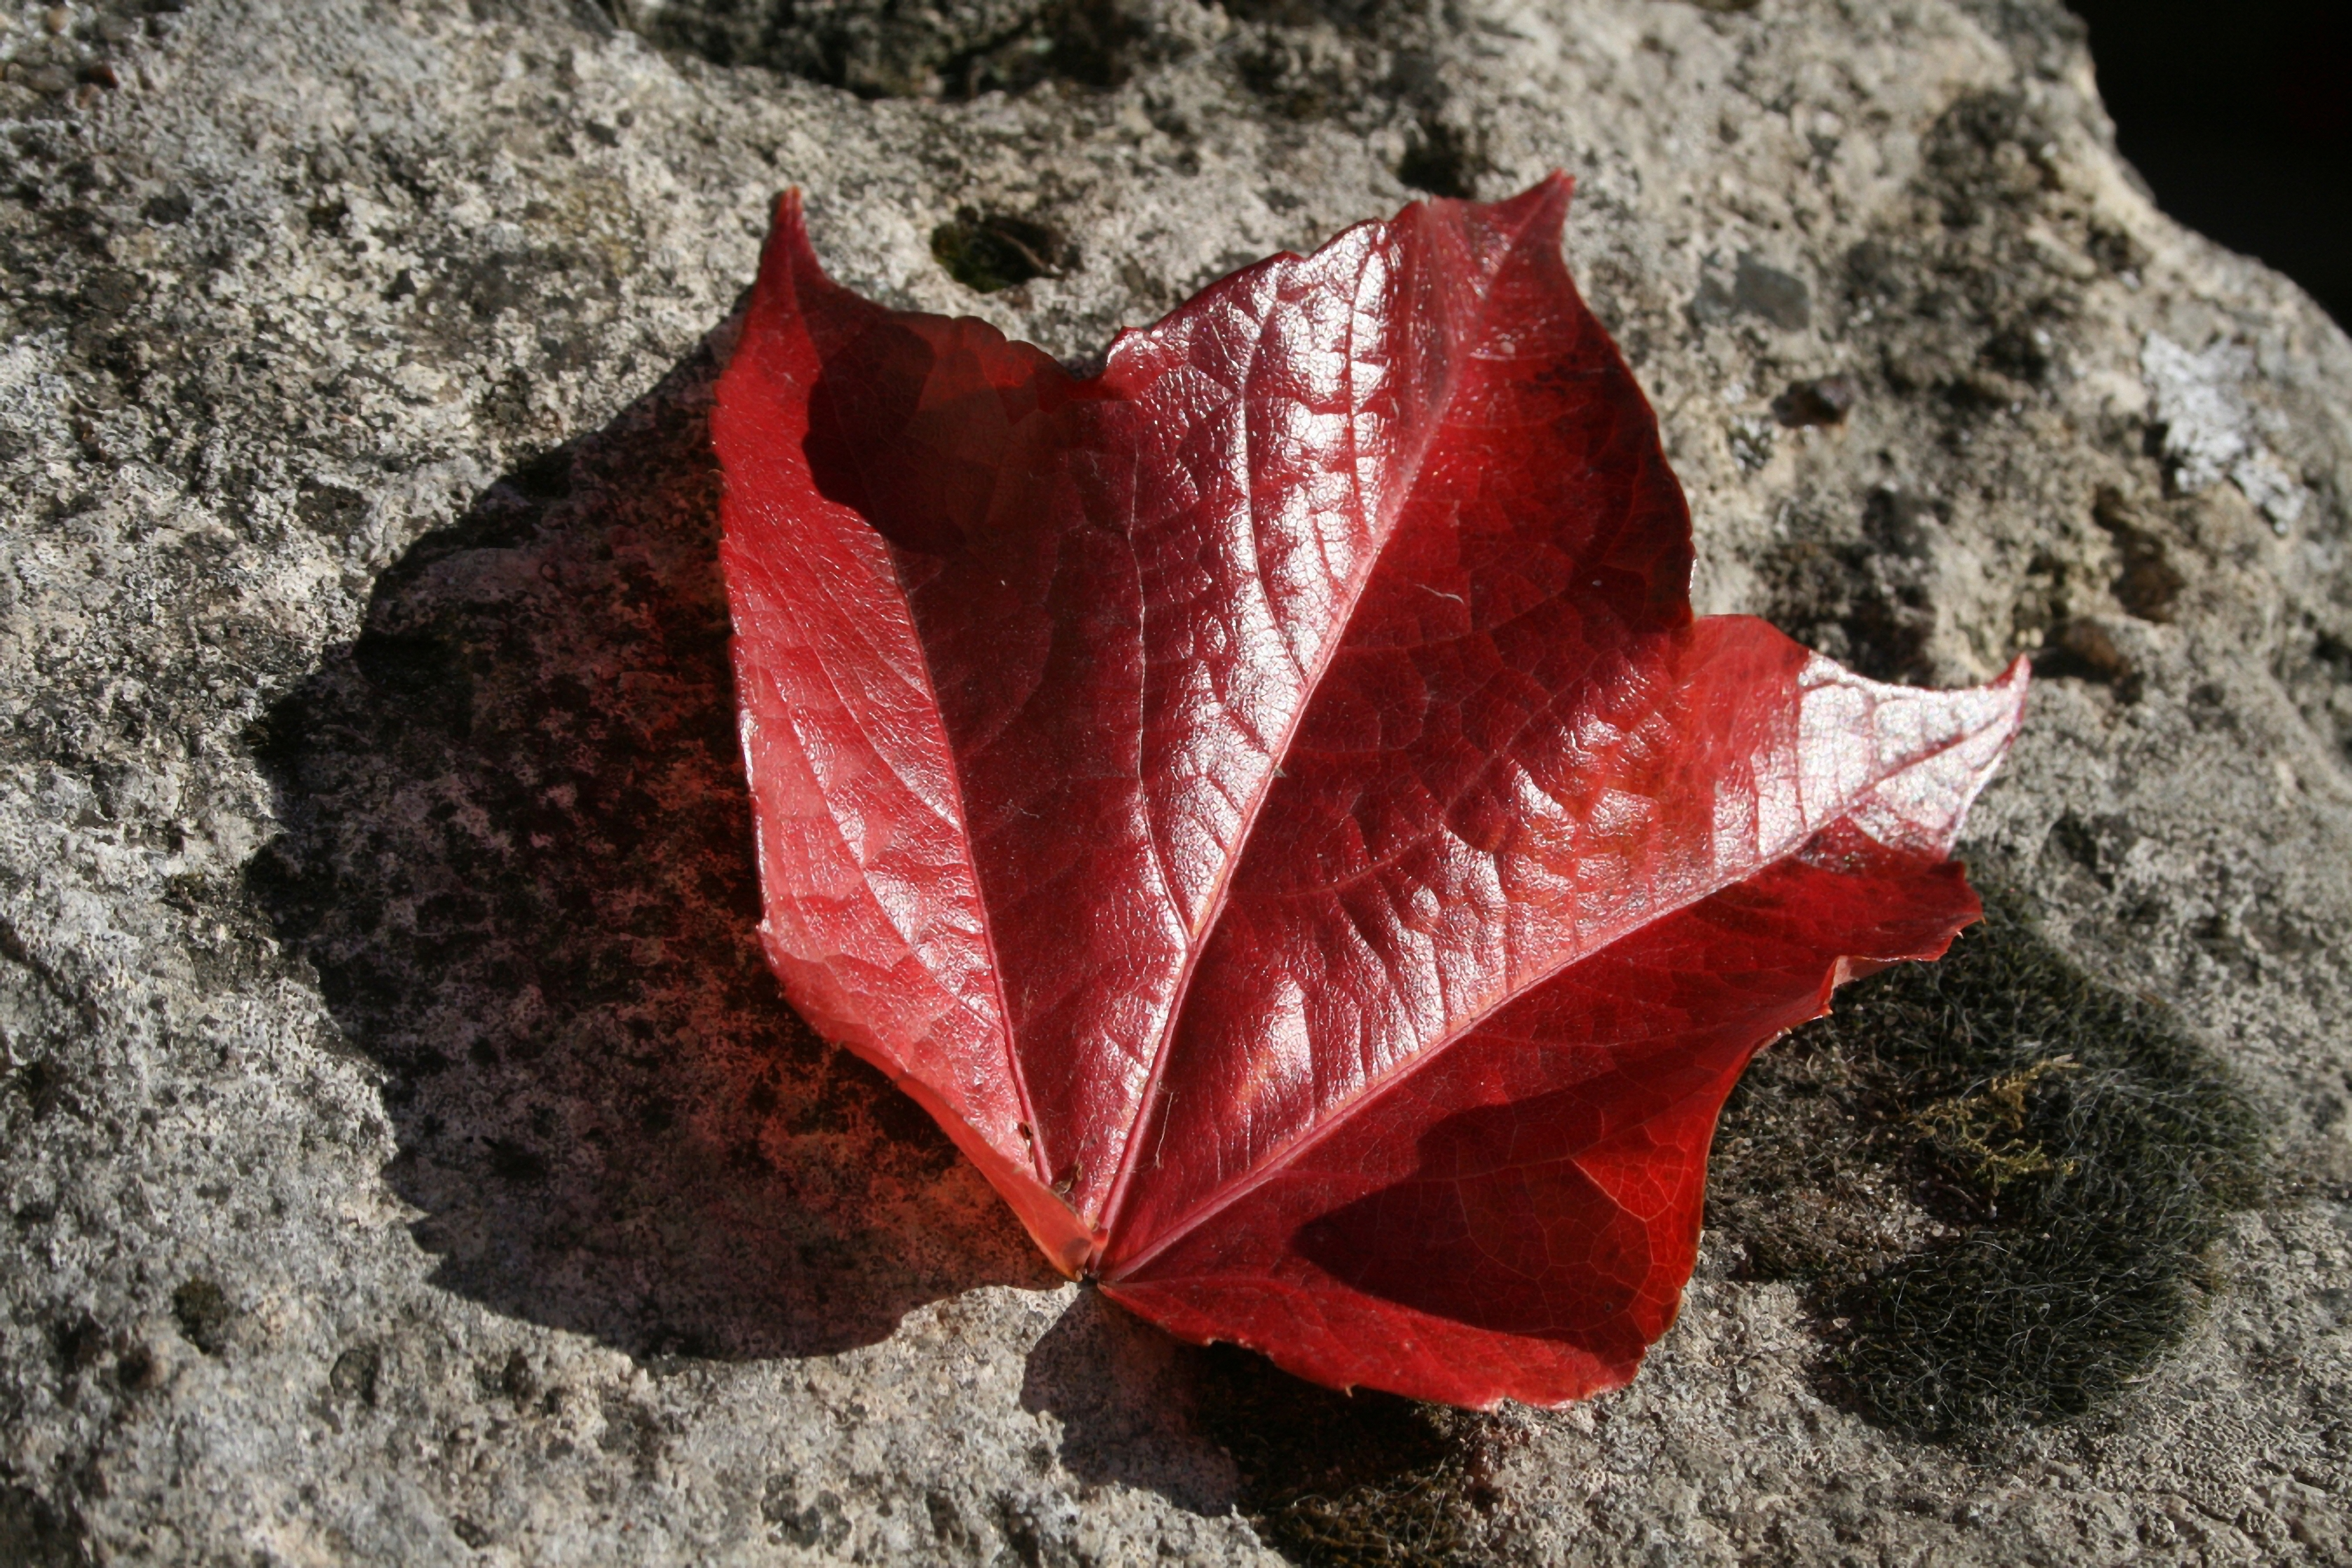 Red Leaf on Rocks in France